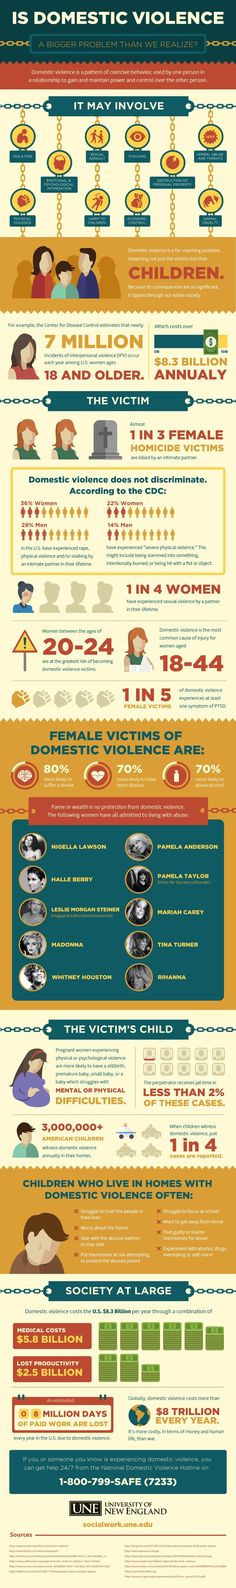 """Is Domestic Abuse a Bigger Problem than We Realize?"" an incredibly insightful info graphic about domestic abuse"